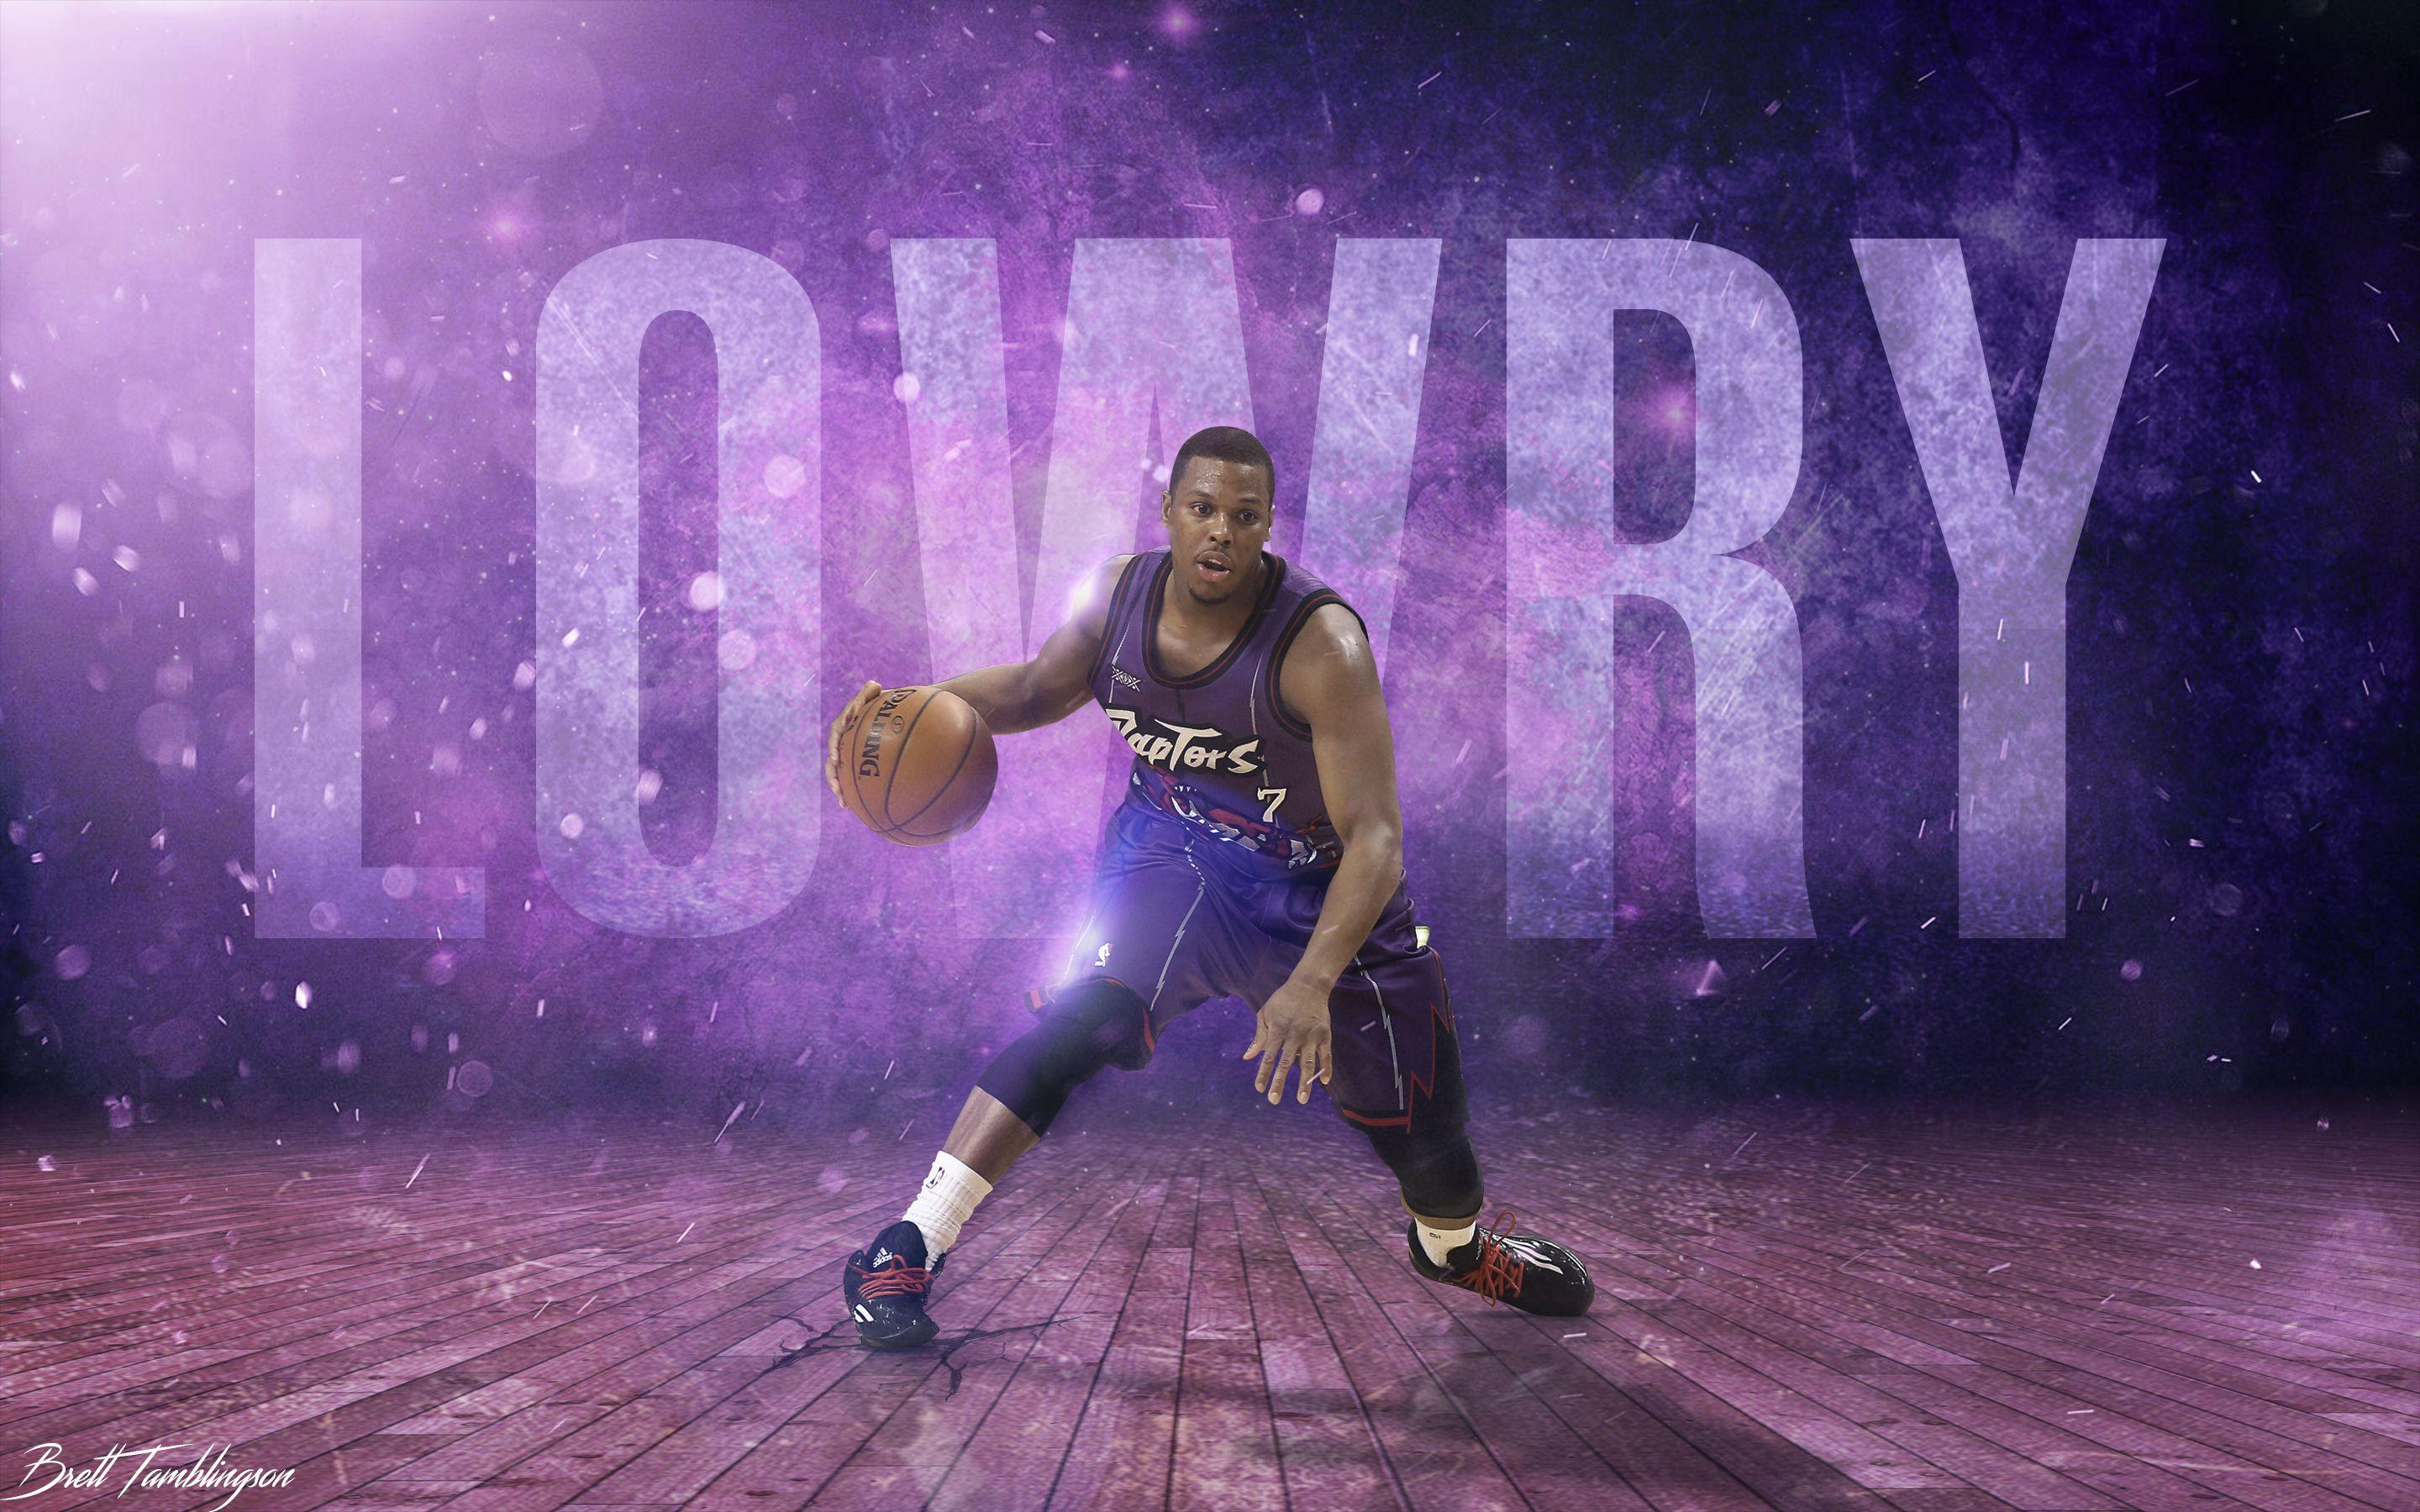 Kyle lowry wallpapers wallpaper cave - Kyle wallpaper ...